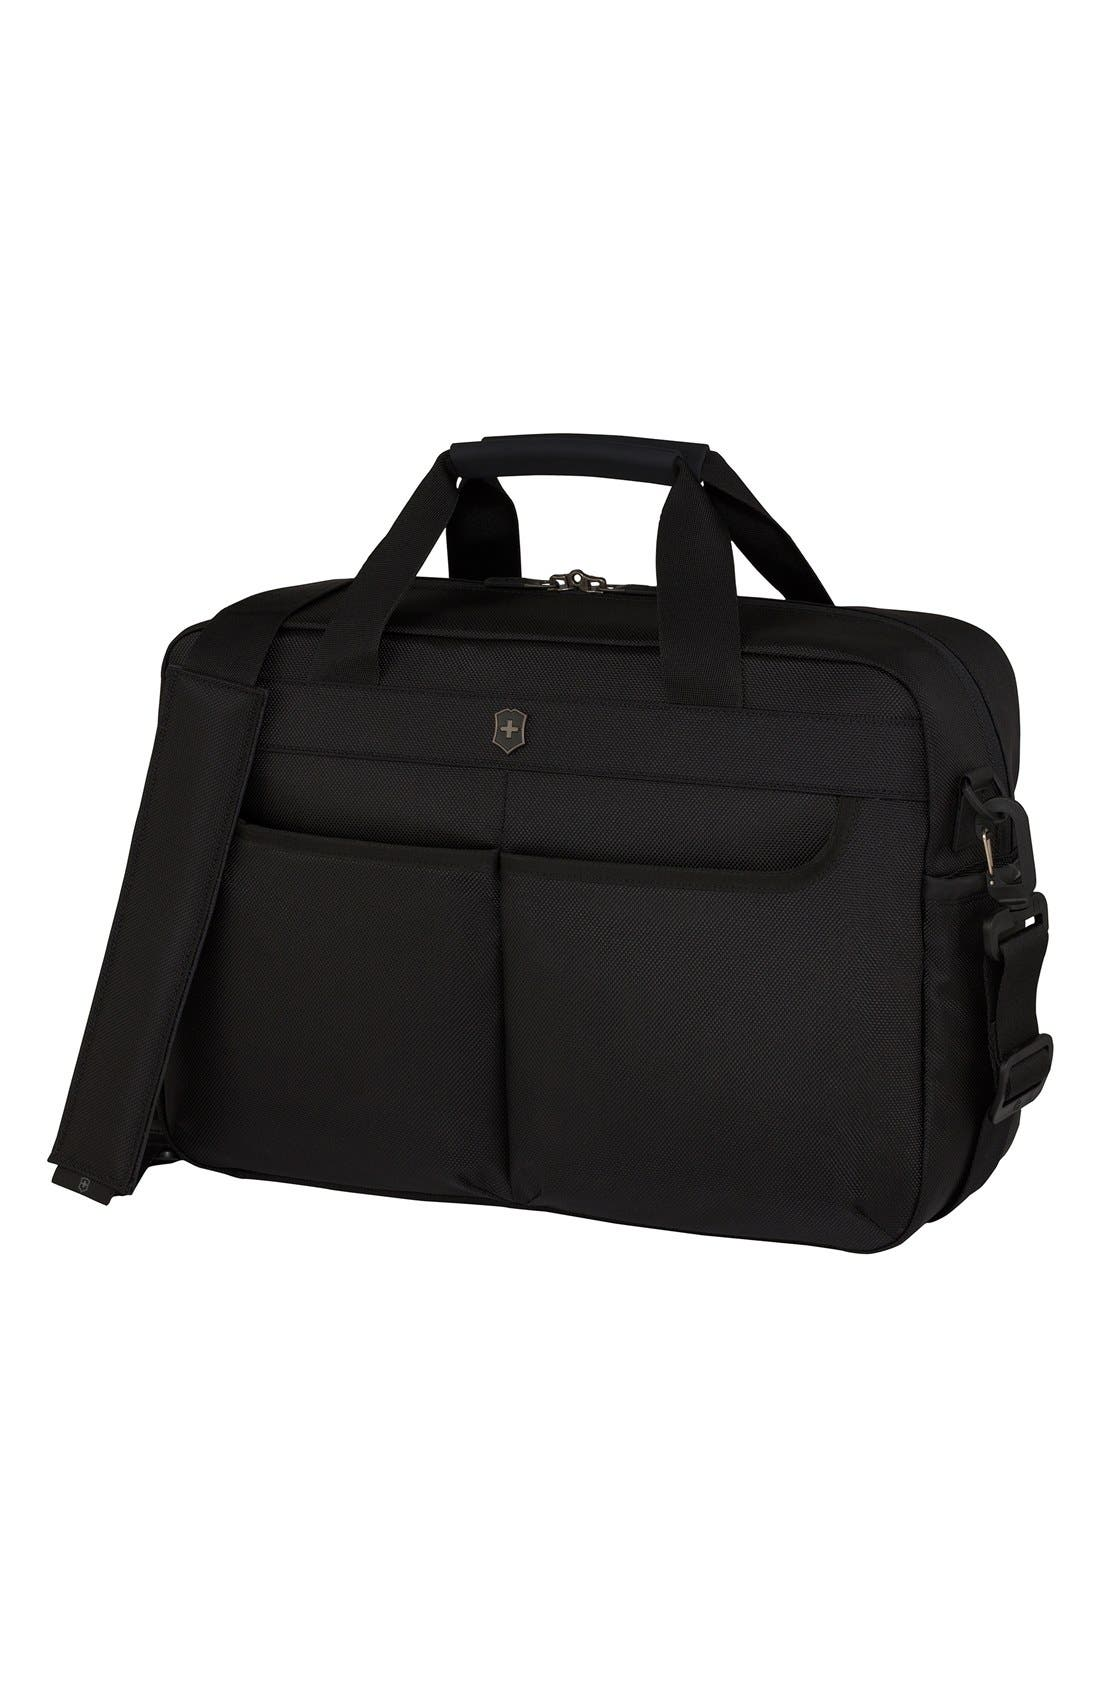 Victorinox Swiss Army® 'WT 5.0' Tote Bag